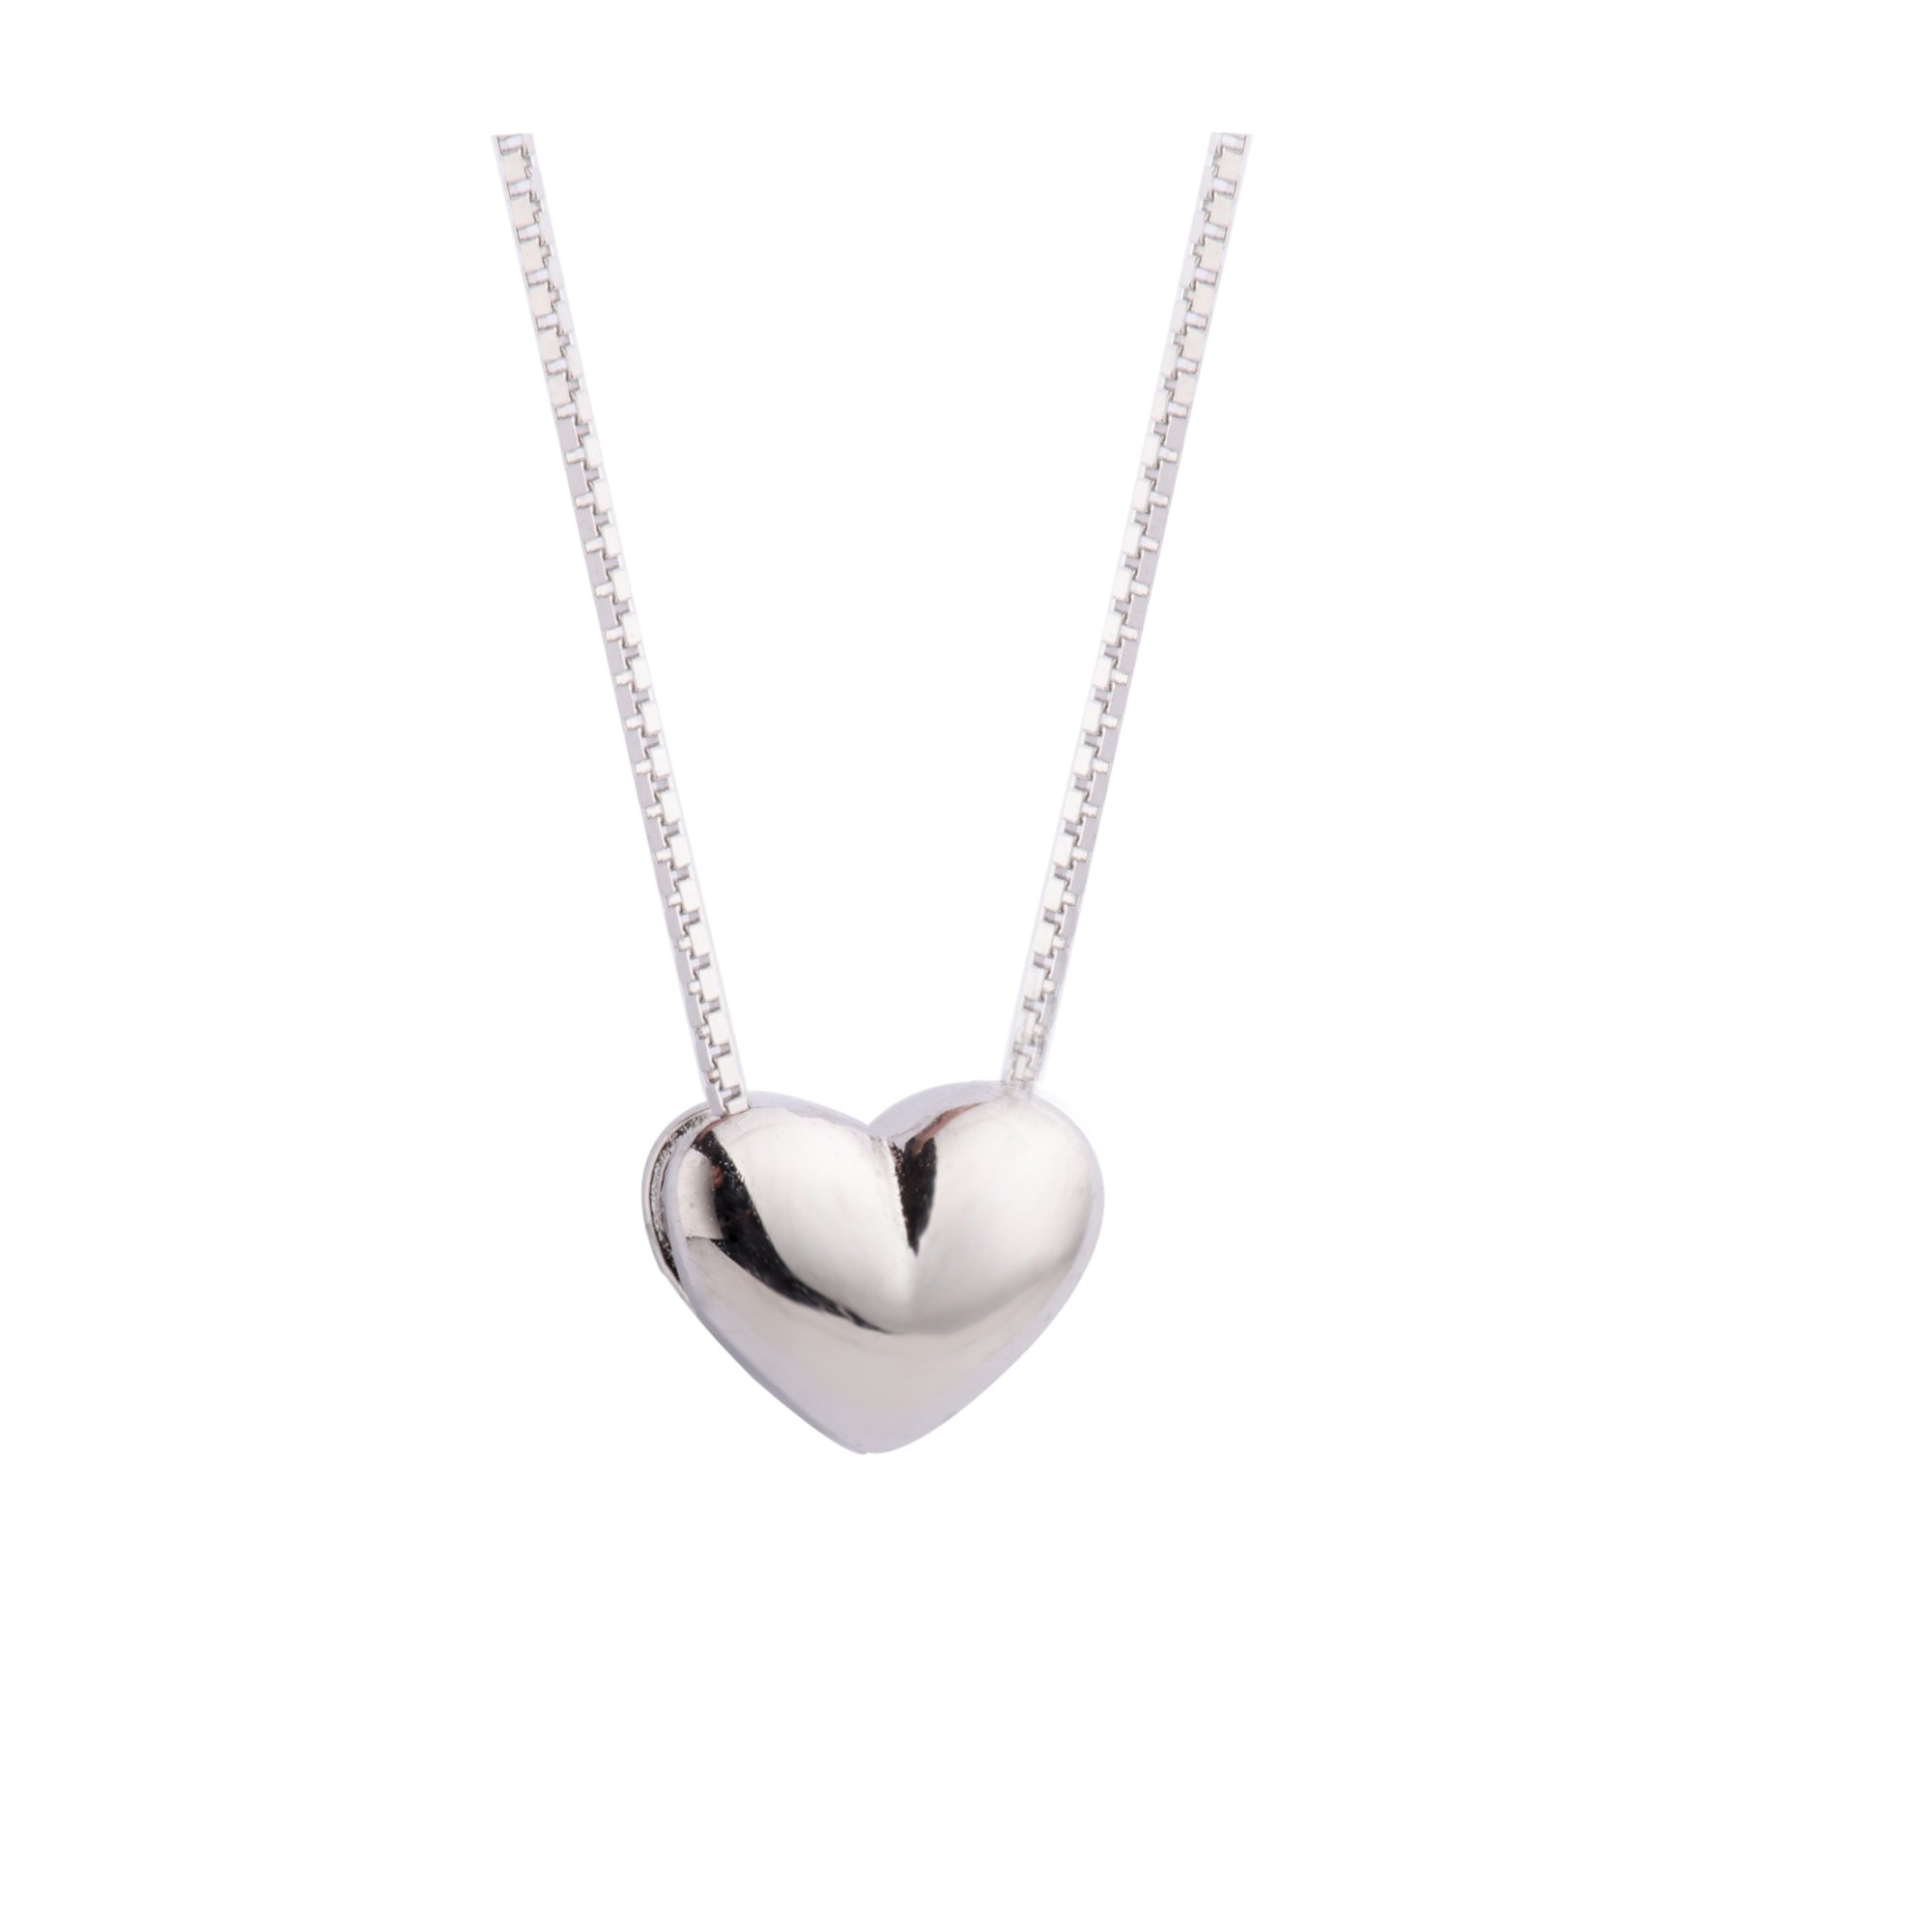 S.Leaf Minimal Necklace Dainty Heart Necklace Sterling Silver Heart Pendant Charm Necklace (silver)